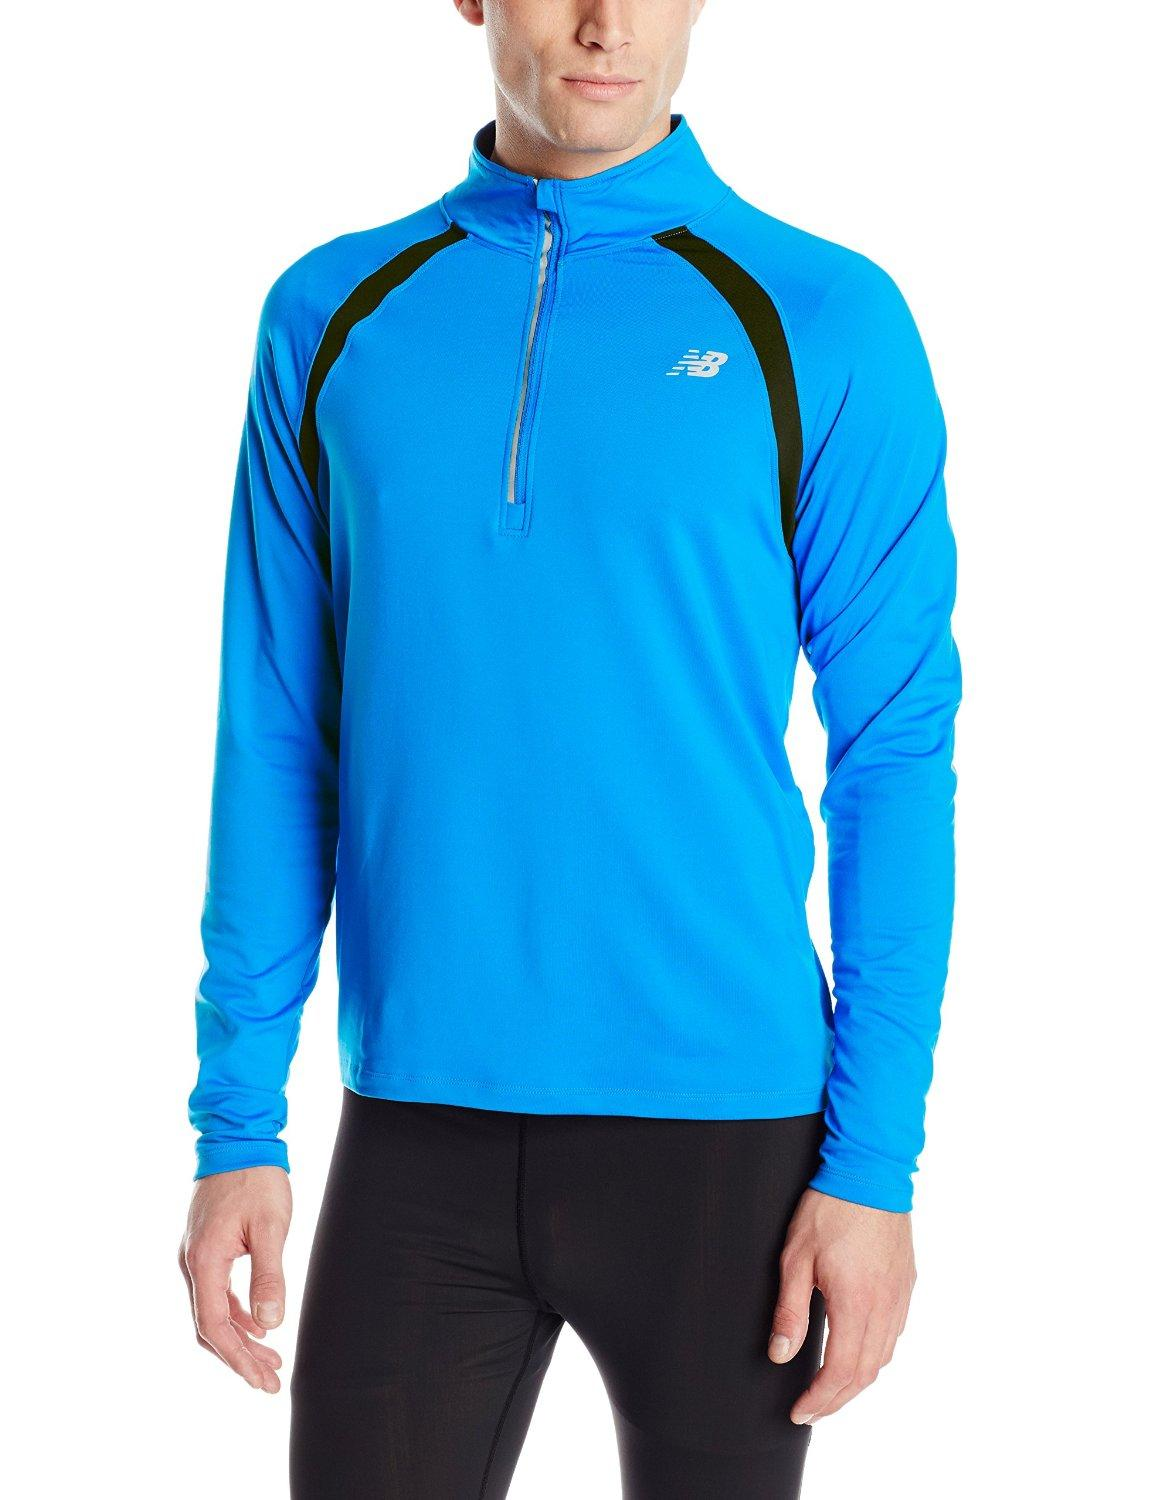 New Balance Men's Running Quarter Zip Tops